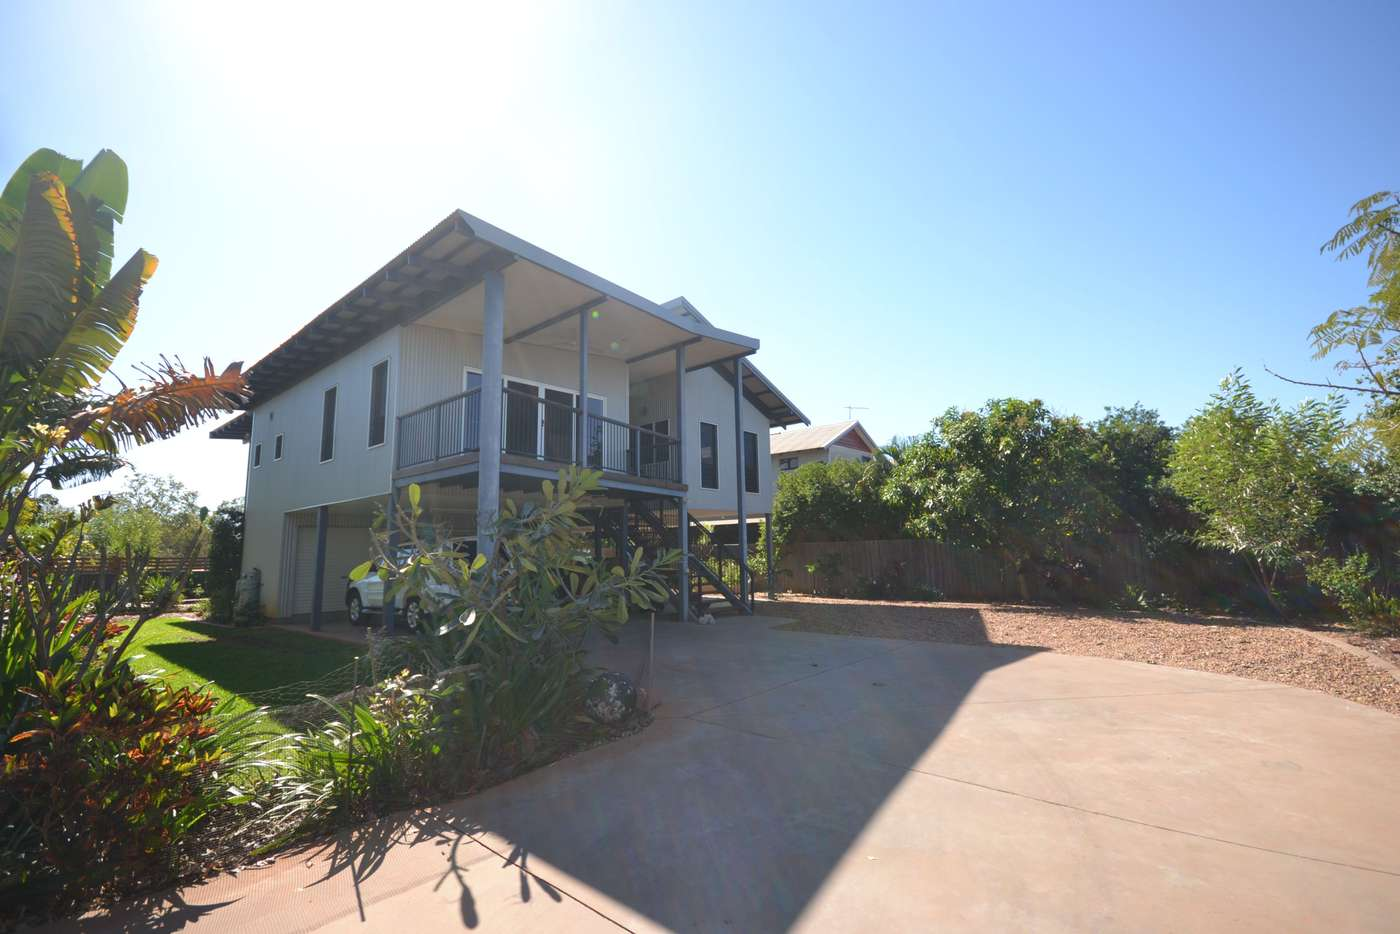 Main view of Homely house listing, 17 Wirl Buru Gardens, Cable Beach WA 6726